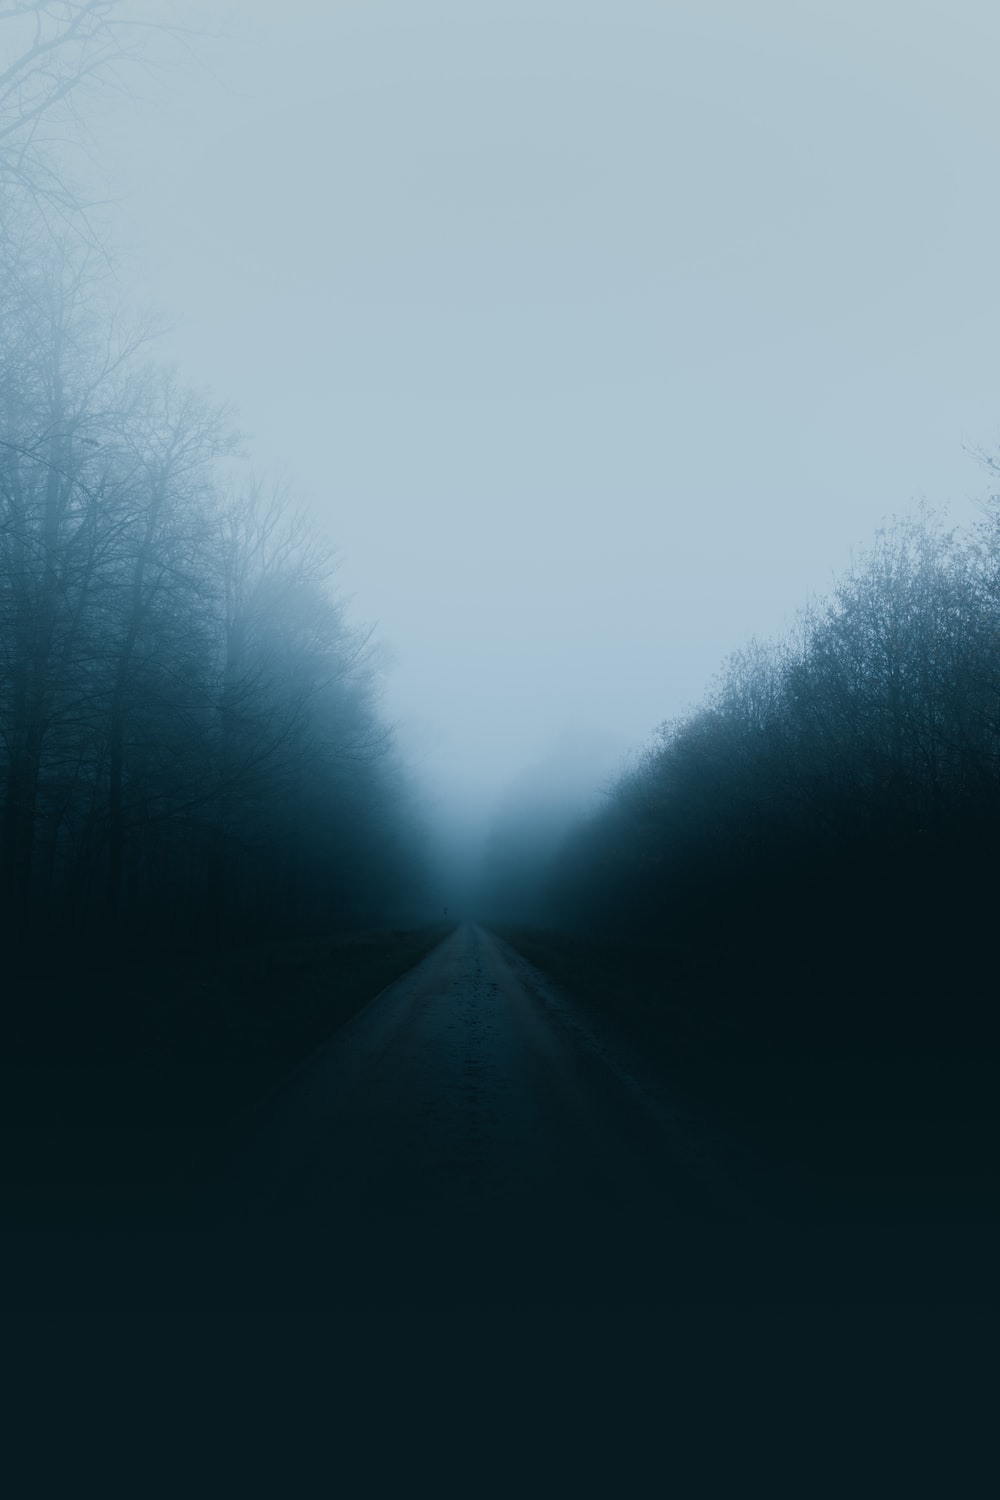 road surrounded with trees covered with mist